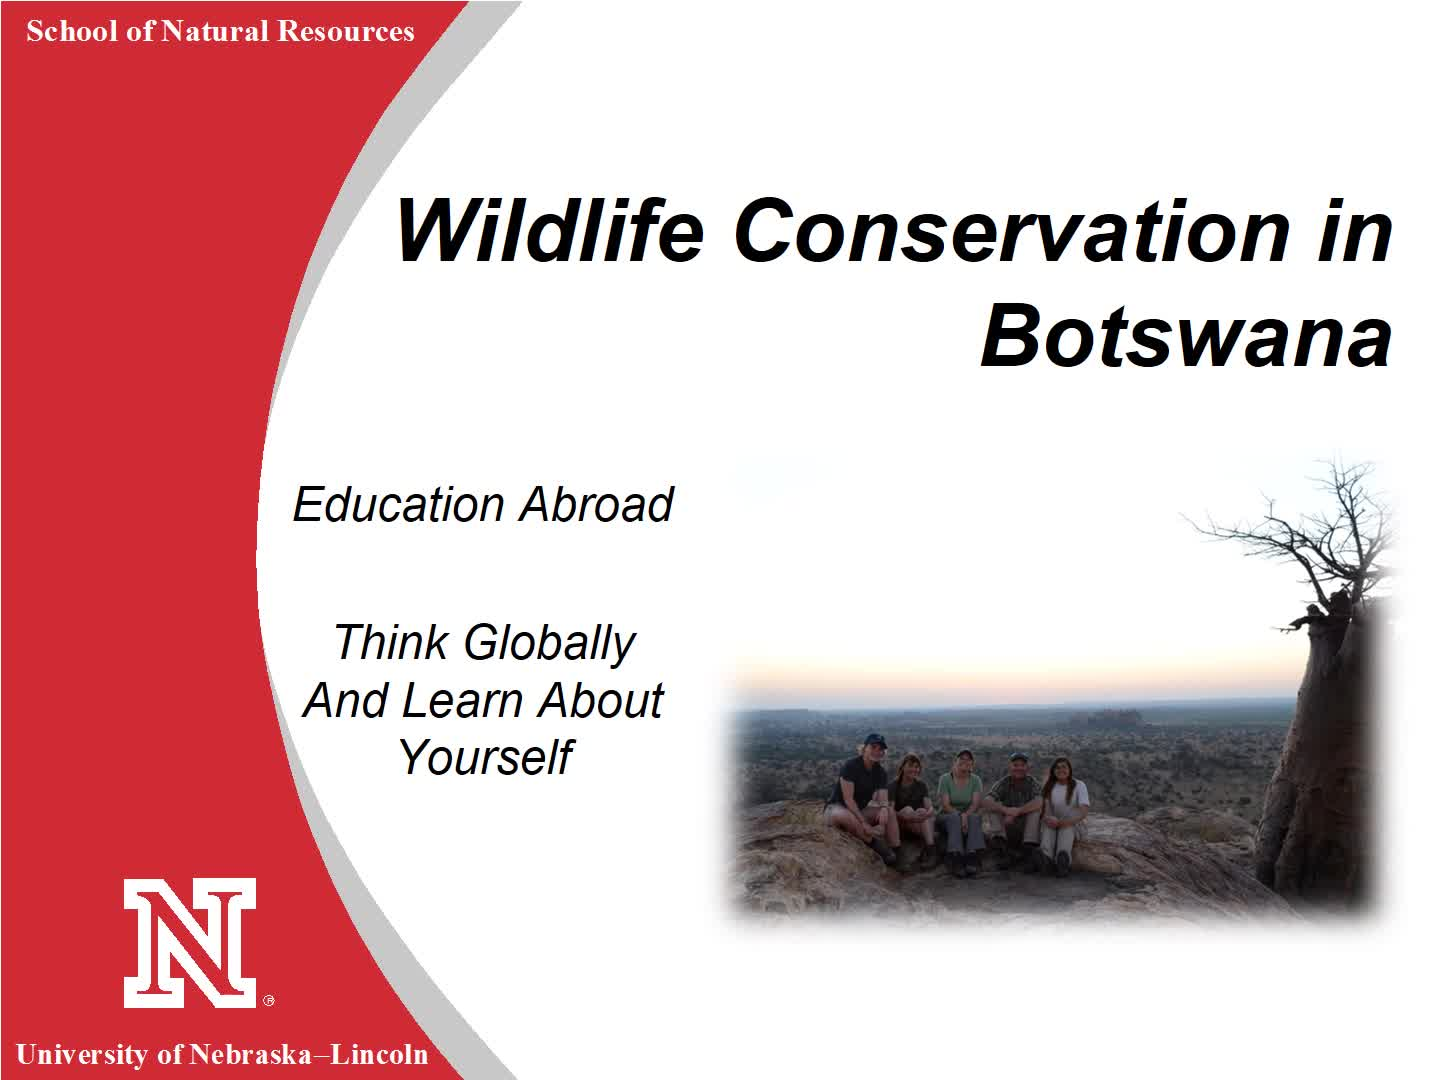 Wildlife Conservation in Botswana